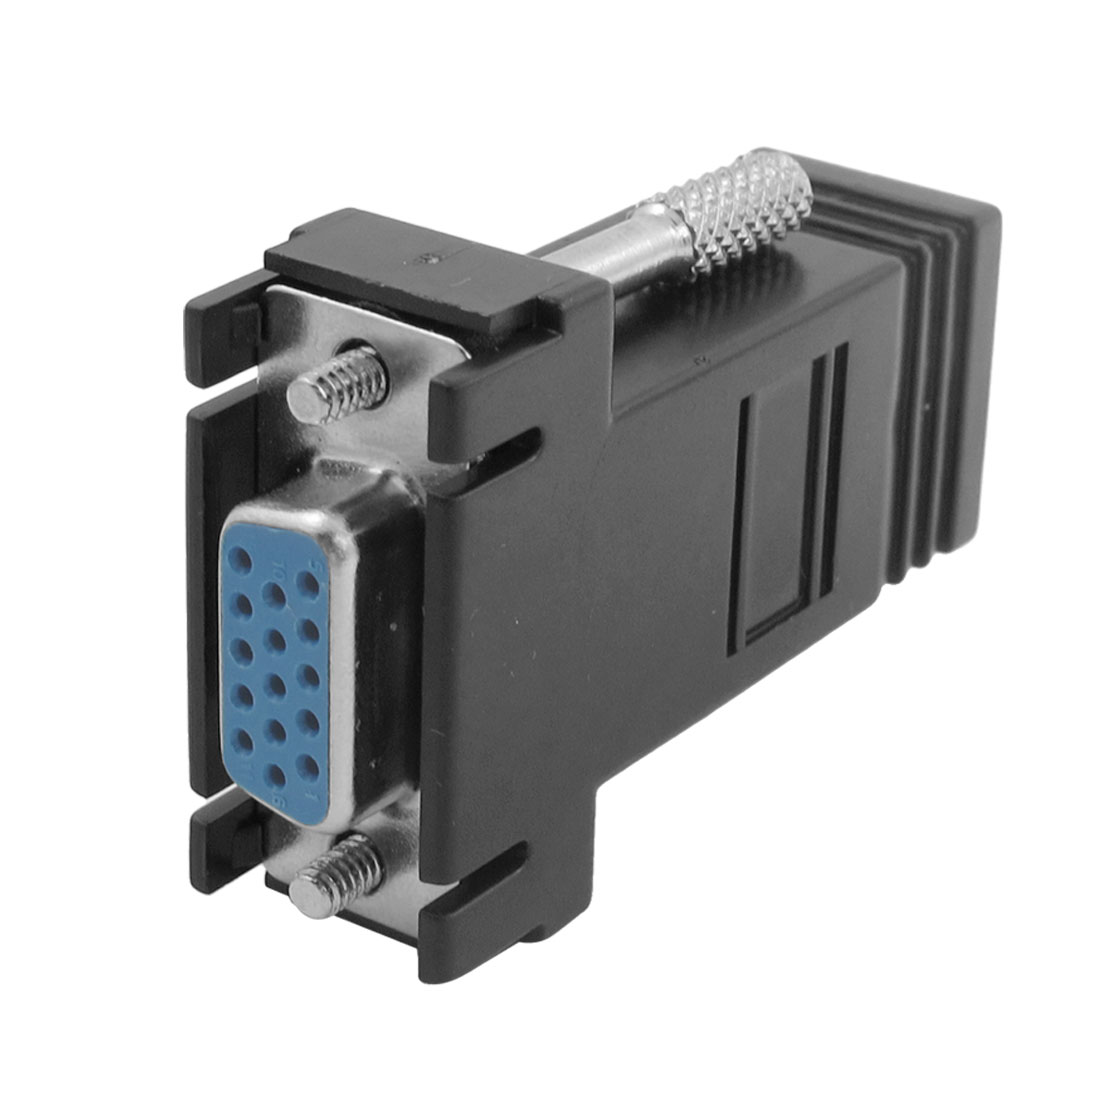 VGA 15 Pin Female to RJ45 Female Jack Coupler Adapter